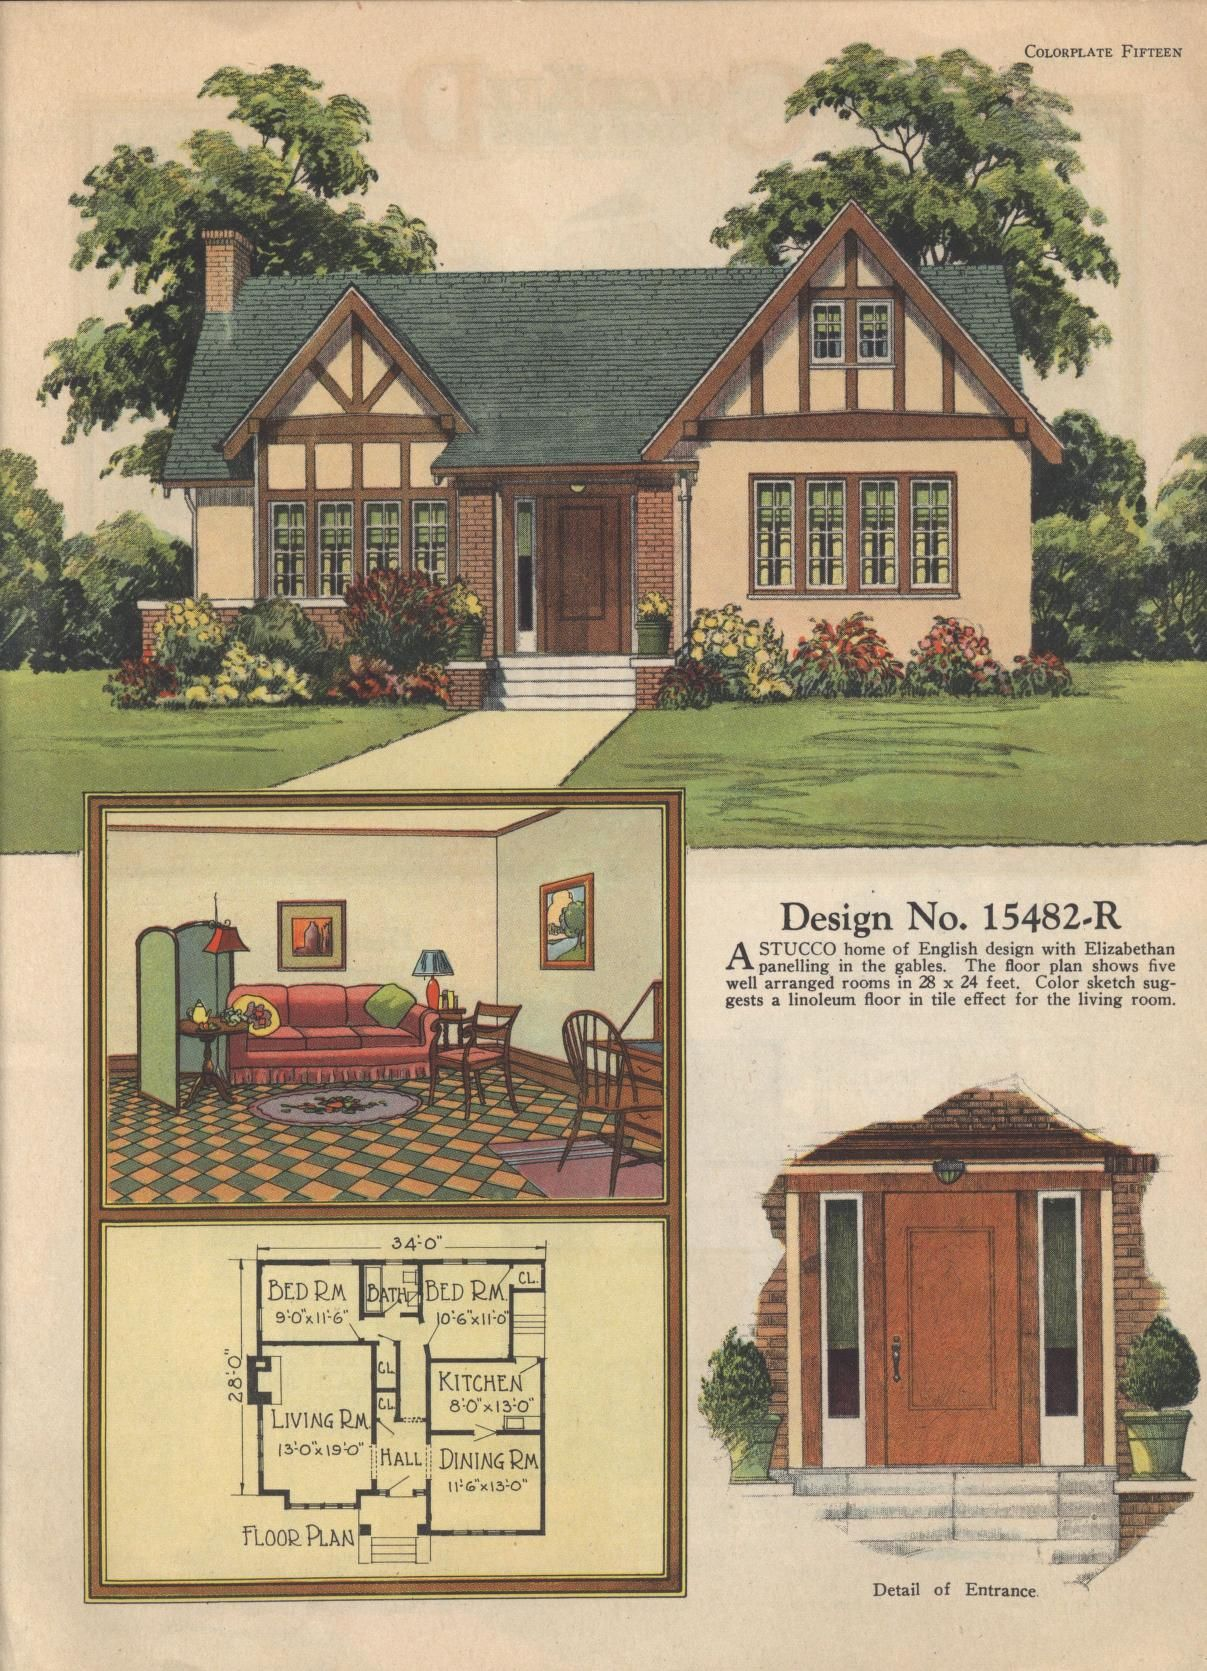 Colorkeed home plans radford 1920s vintage house plans for Classic tudor house plans